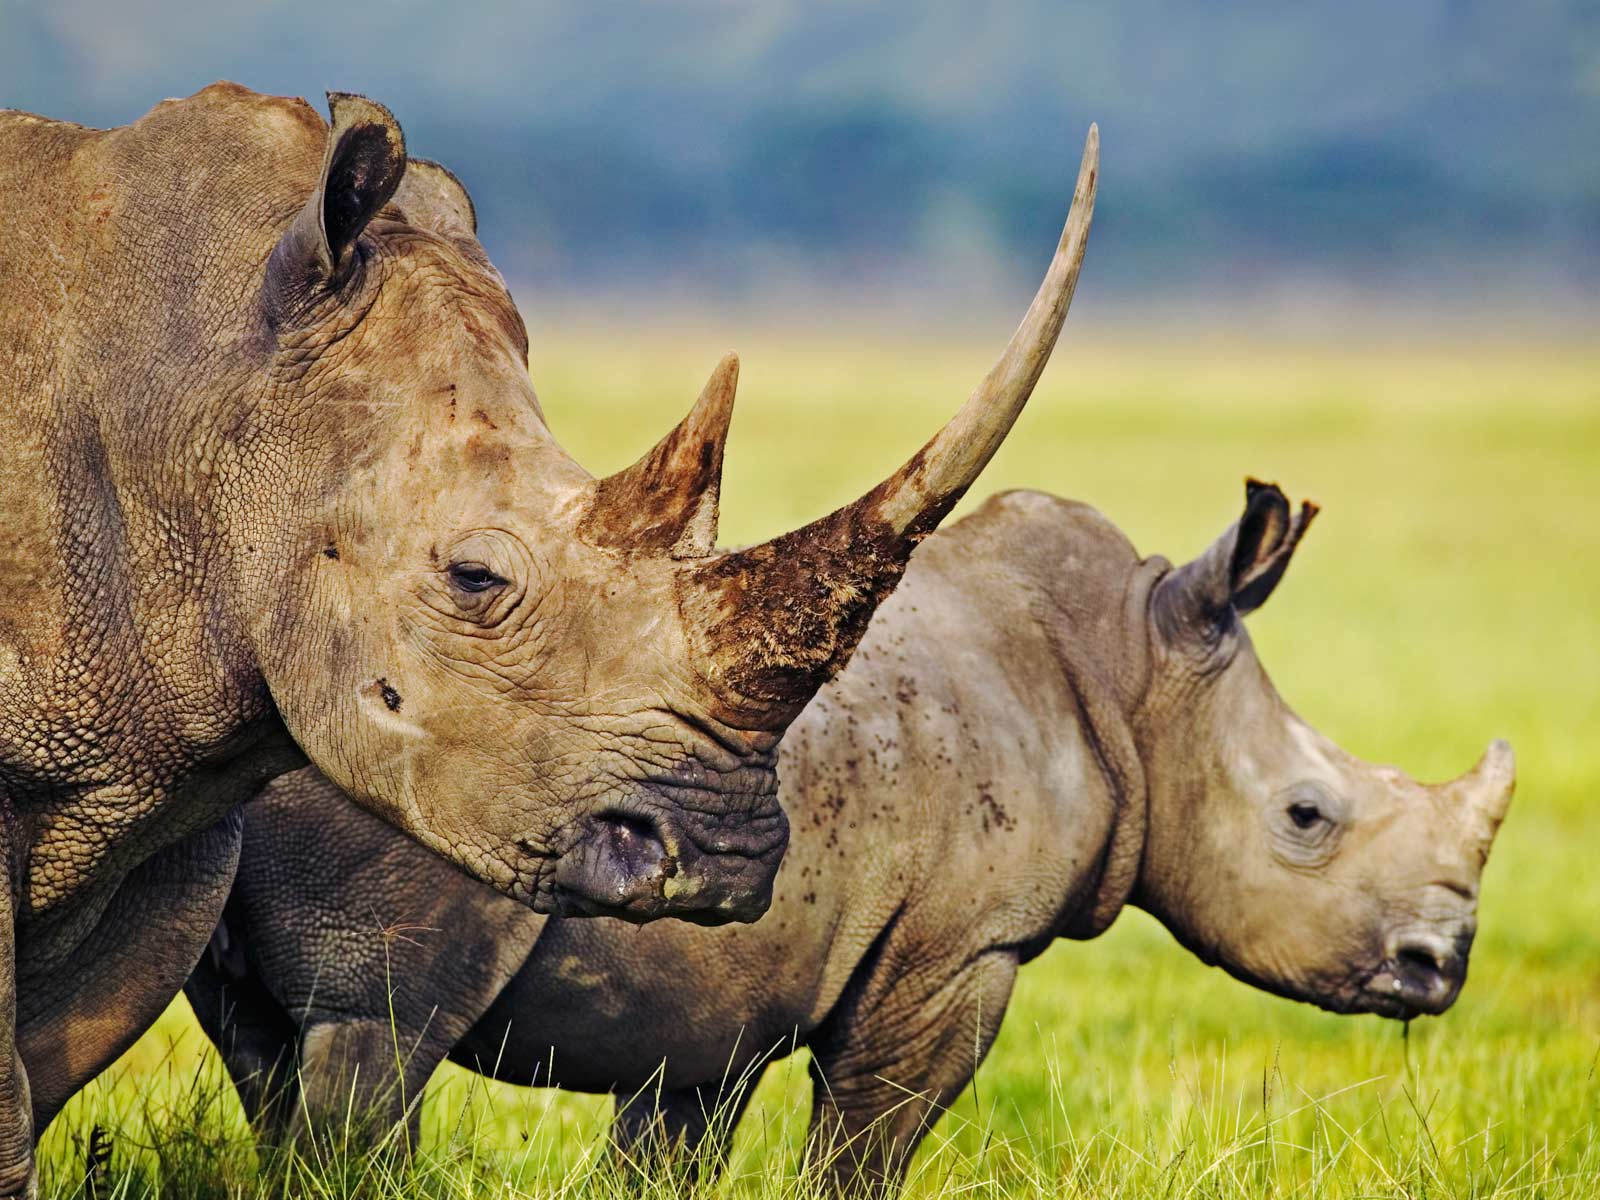 poisoning of the rhino horns essay Academic essay model title the rhino is close to extinction describe the problem and evaluate two possible solutions introduction  horns grow back, maybe even .